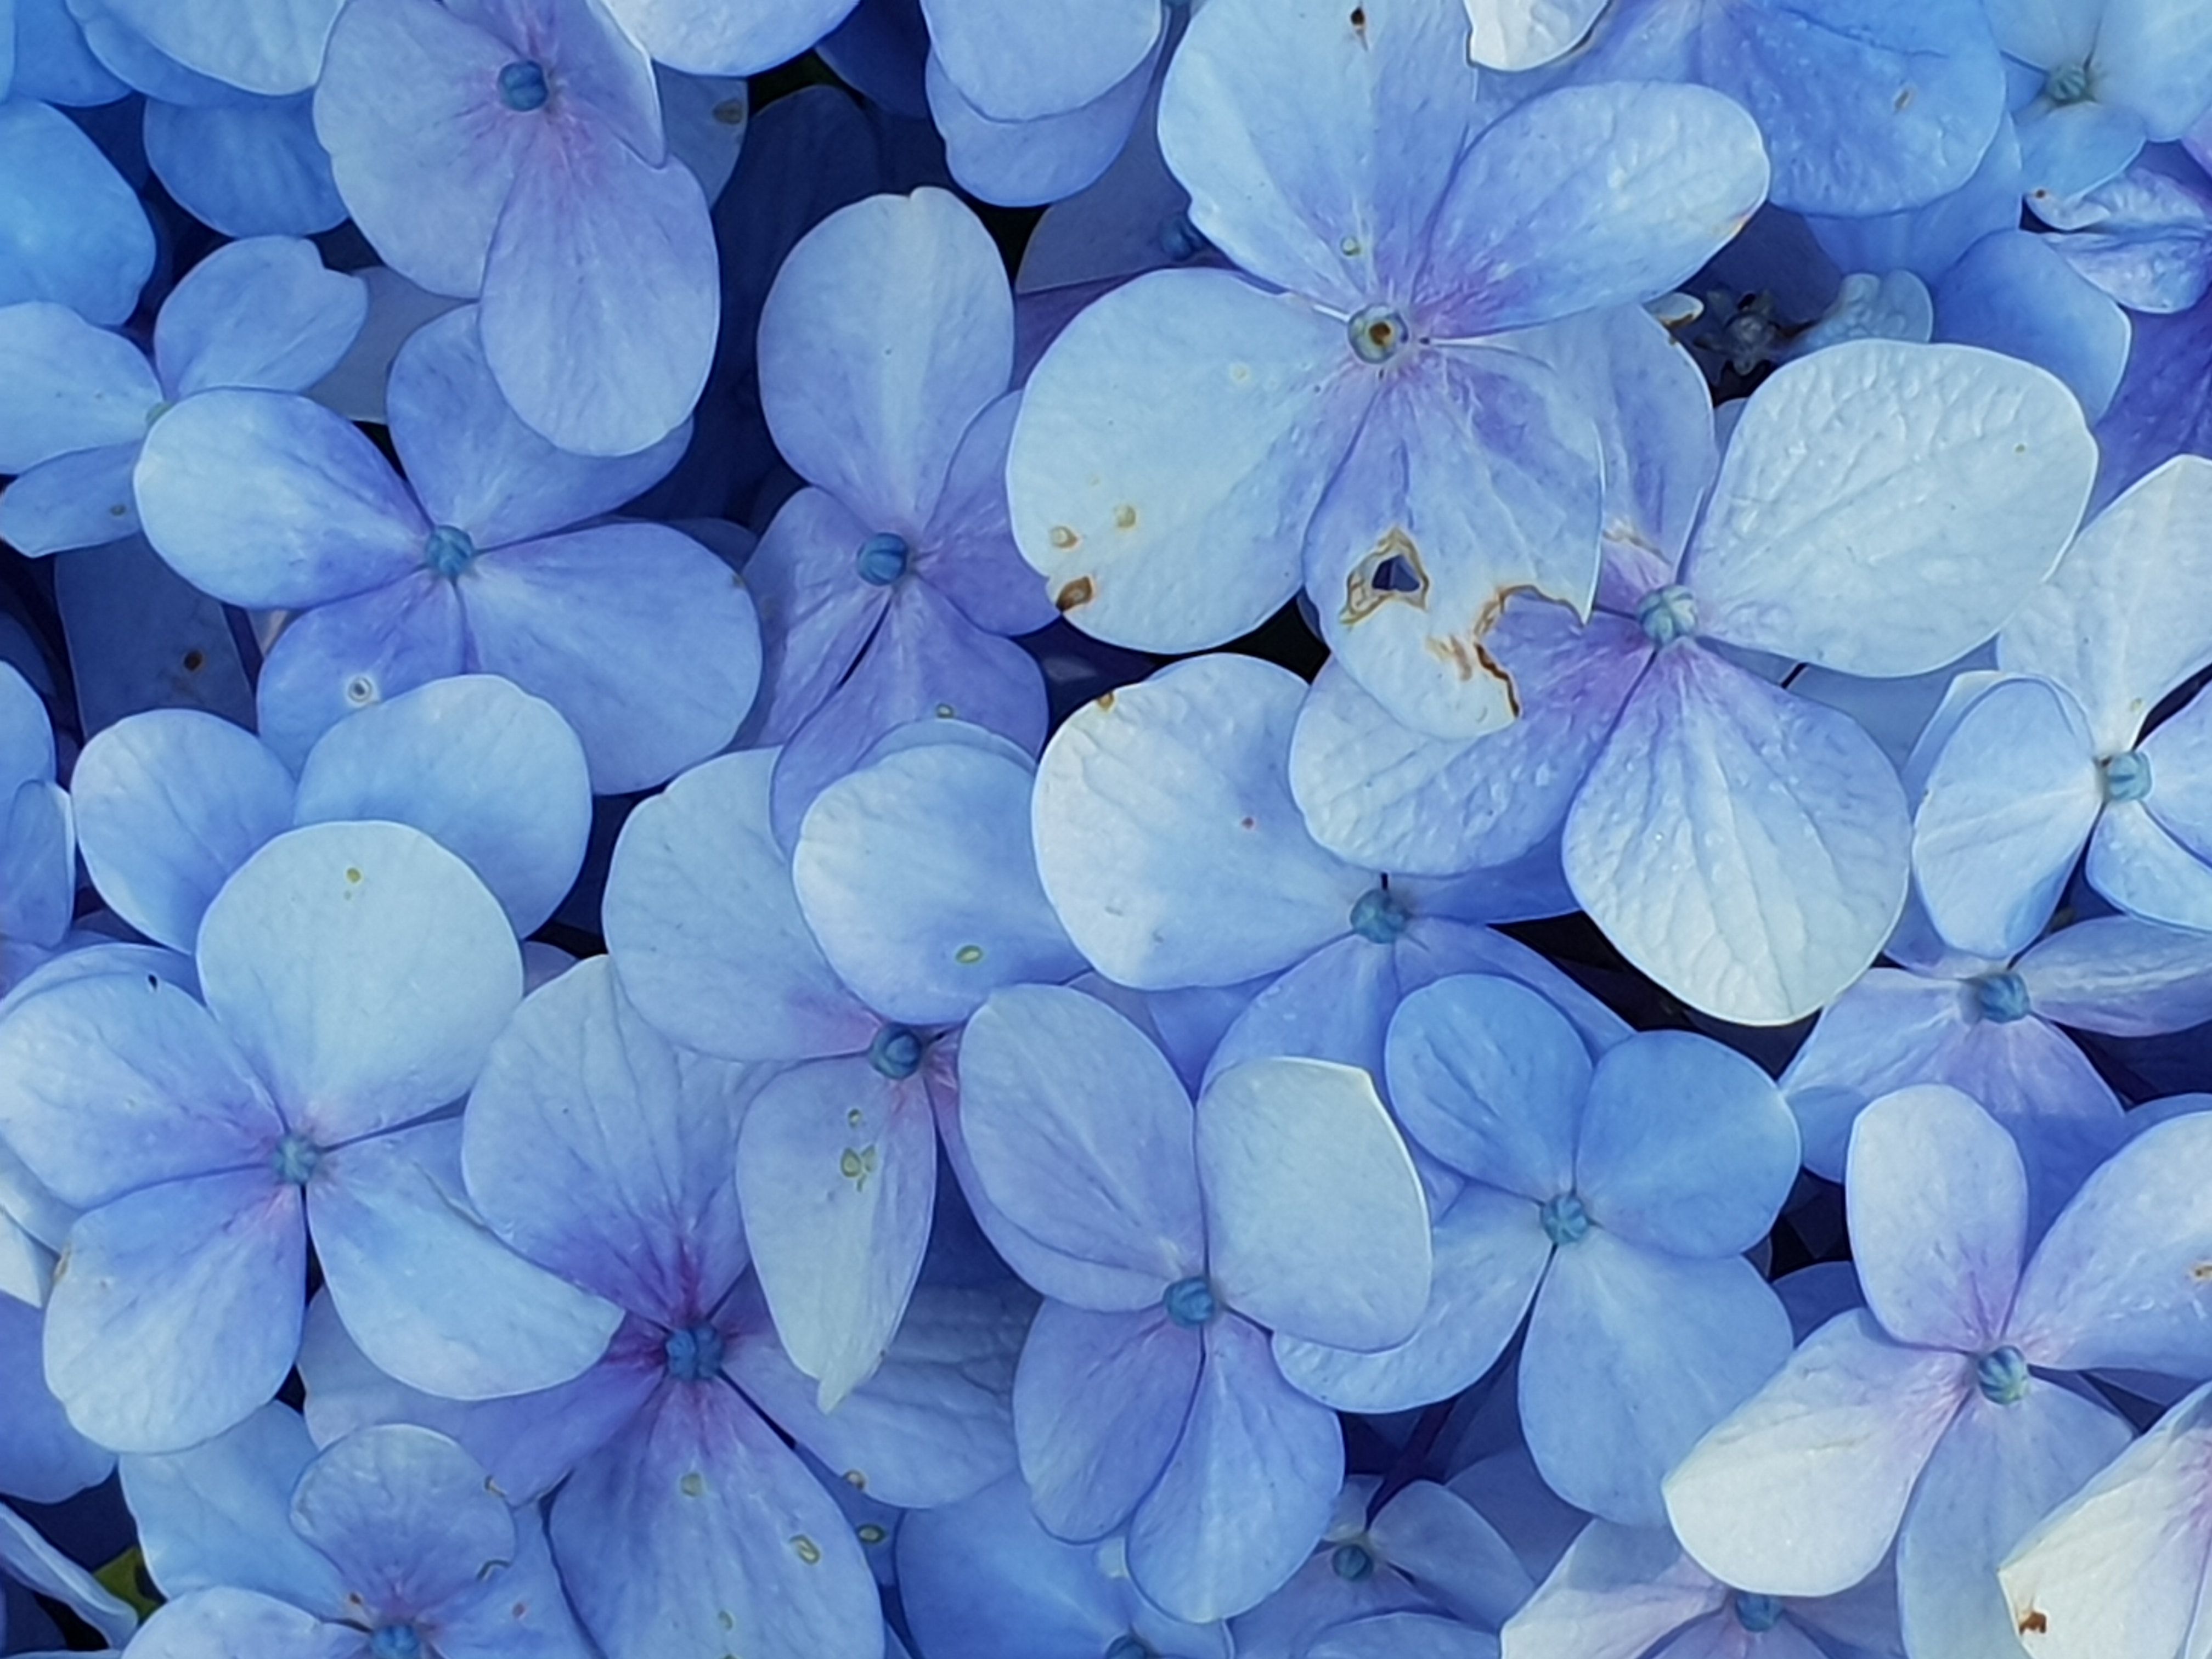 Close-up Photo of Blue Petaled Flowers, Nature, Leaves, Growth, Outdoors, HQ Photo